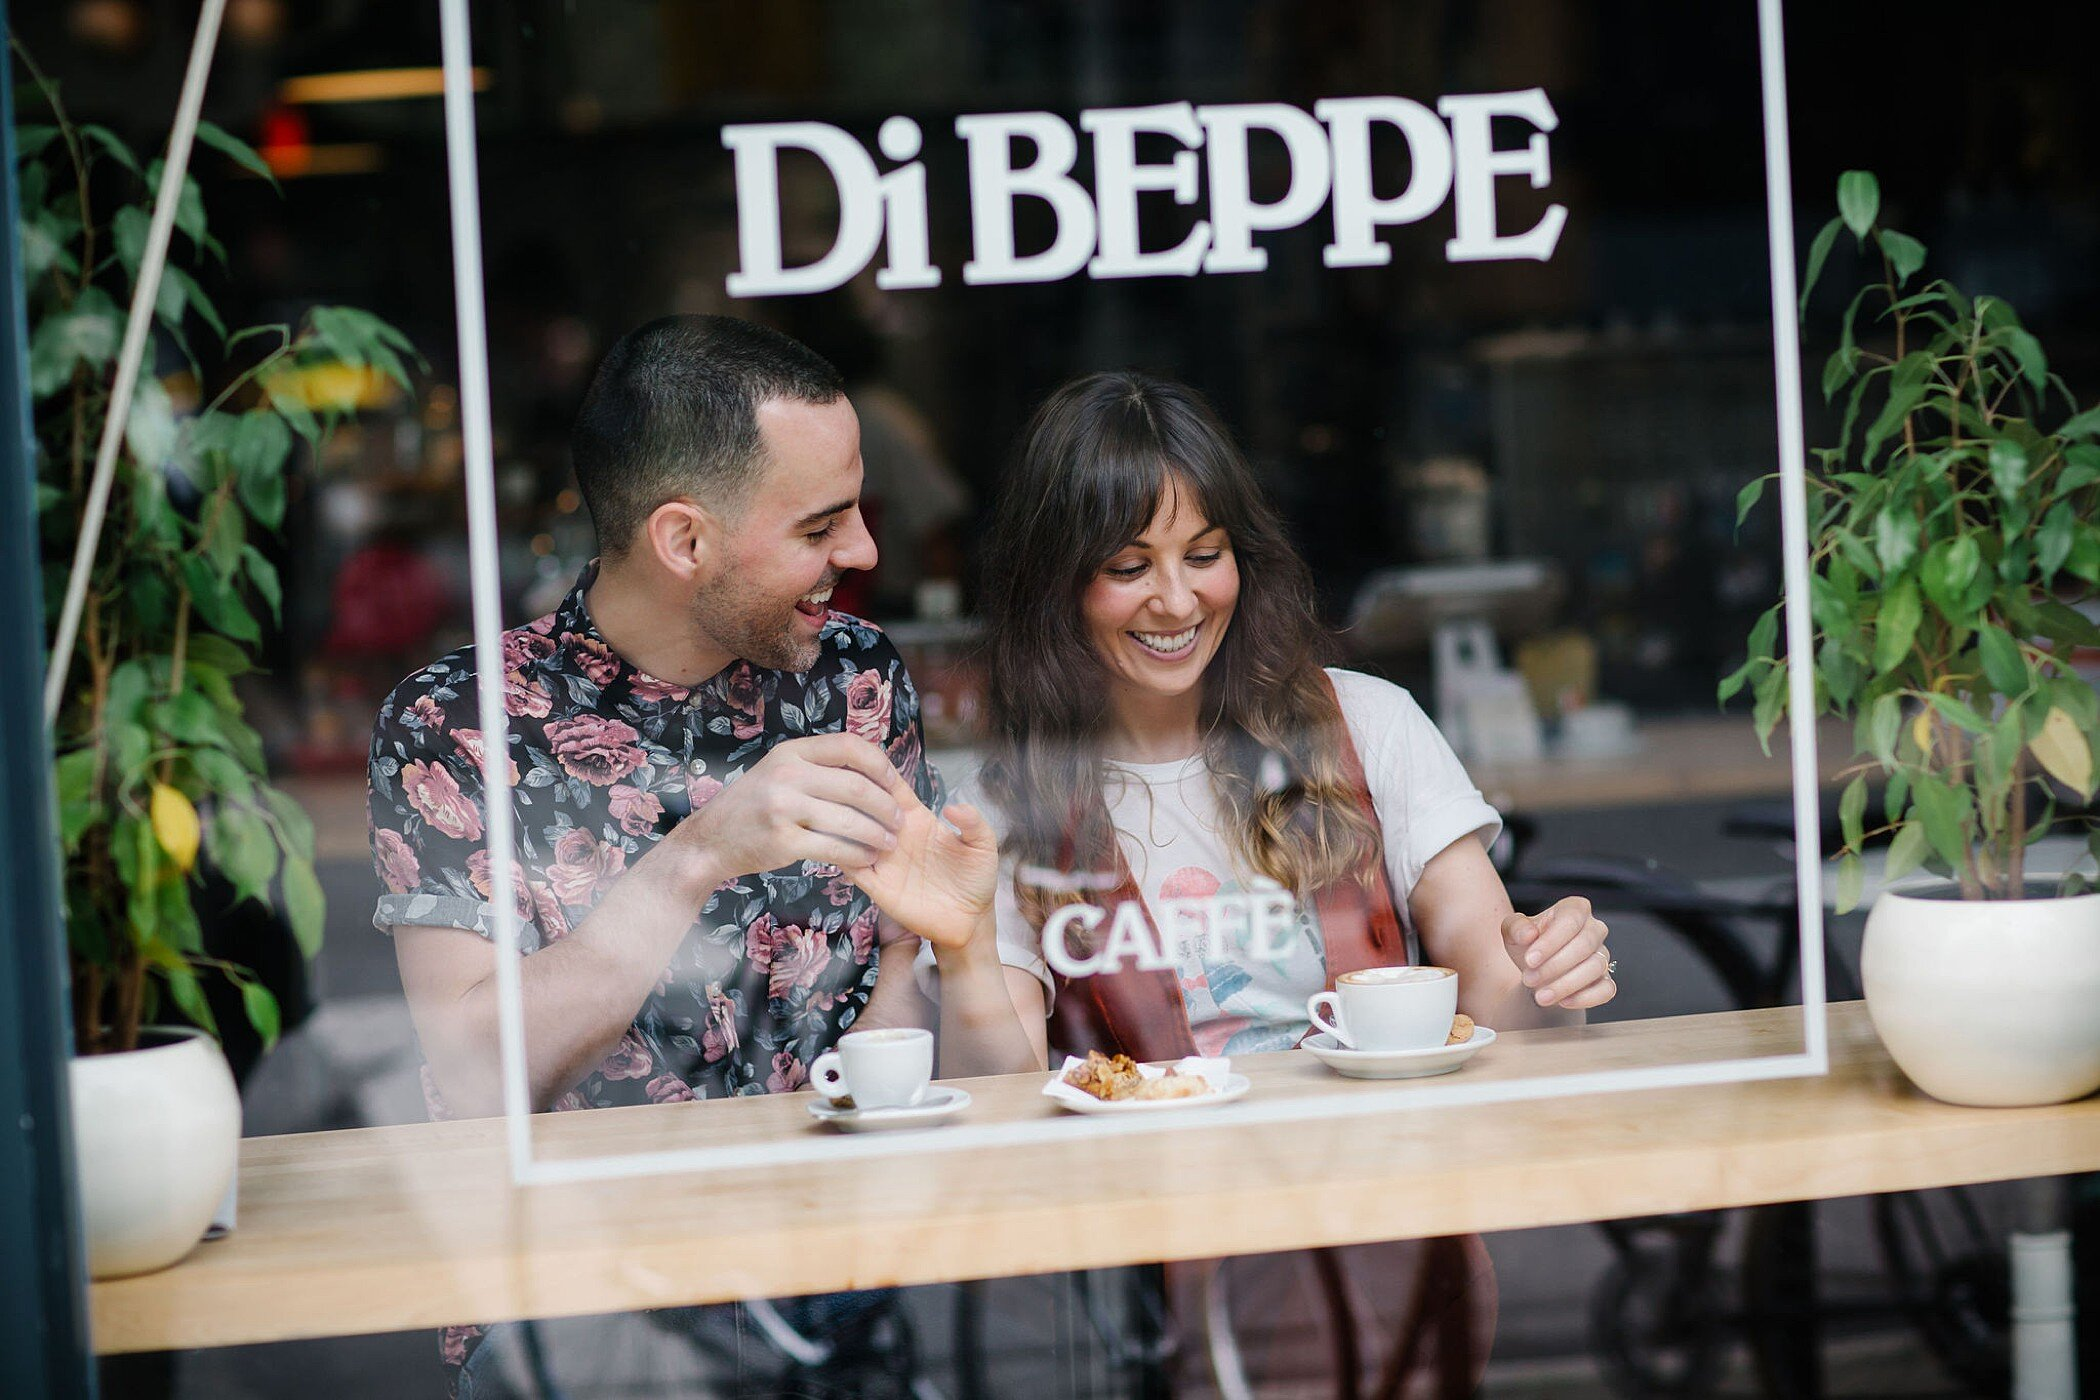 July14.DanandRo2642_Note Photography Documentary Photographer Wedding Photos Vancouver B.C. Best 2019 2020 Jericho Beach Engagement Session Gastown Di Beppe DiBeppe.jpg